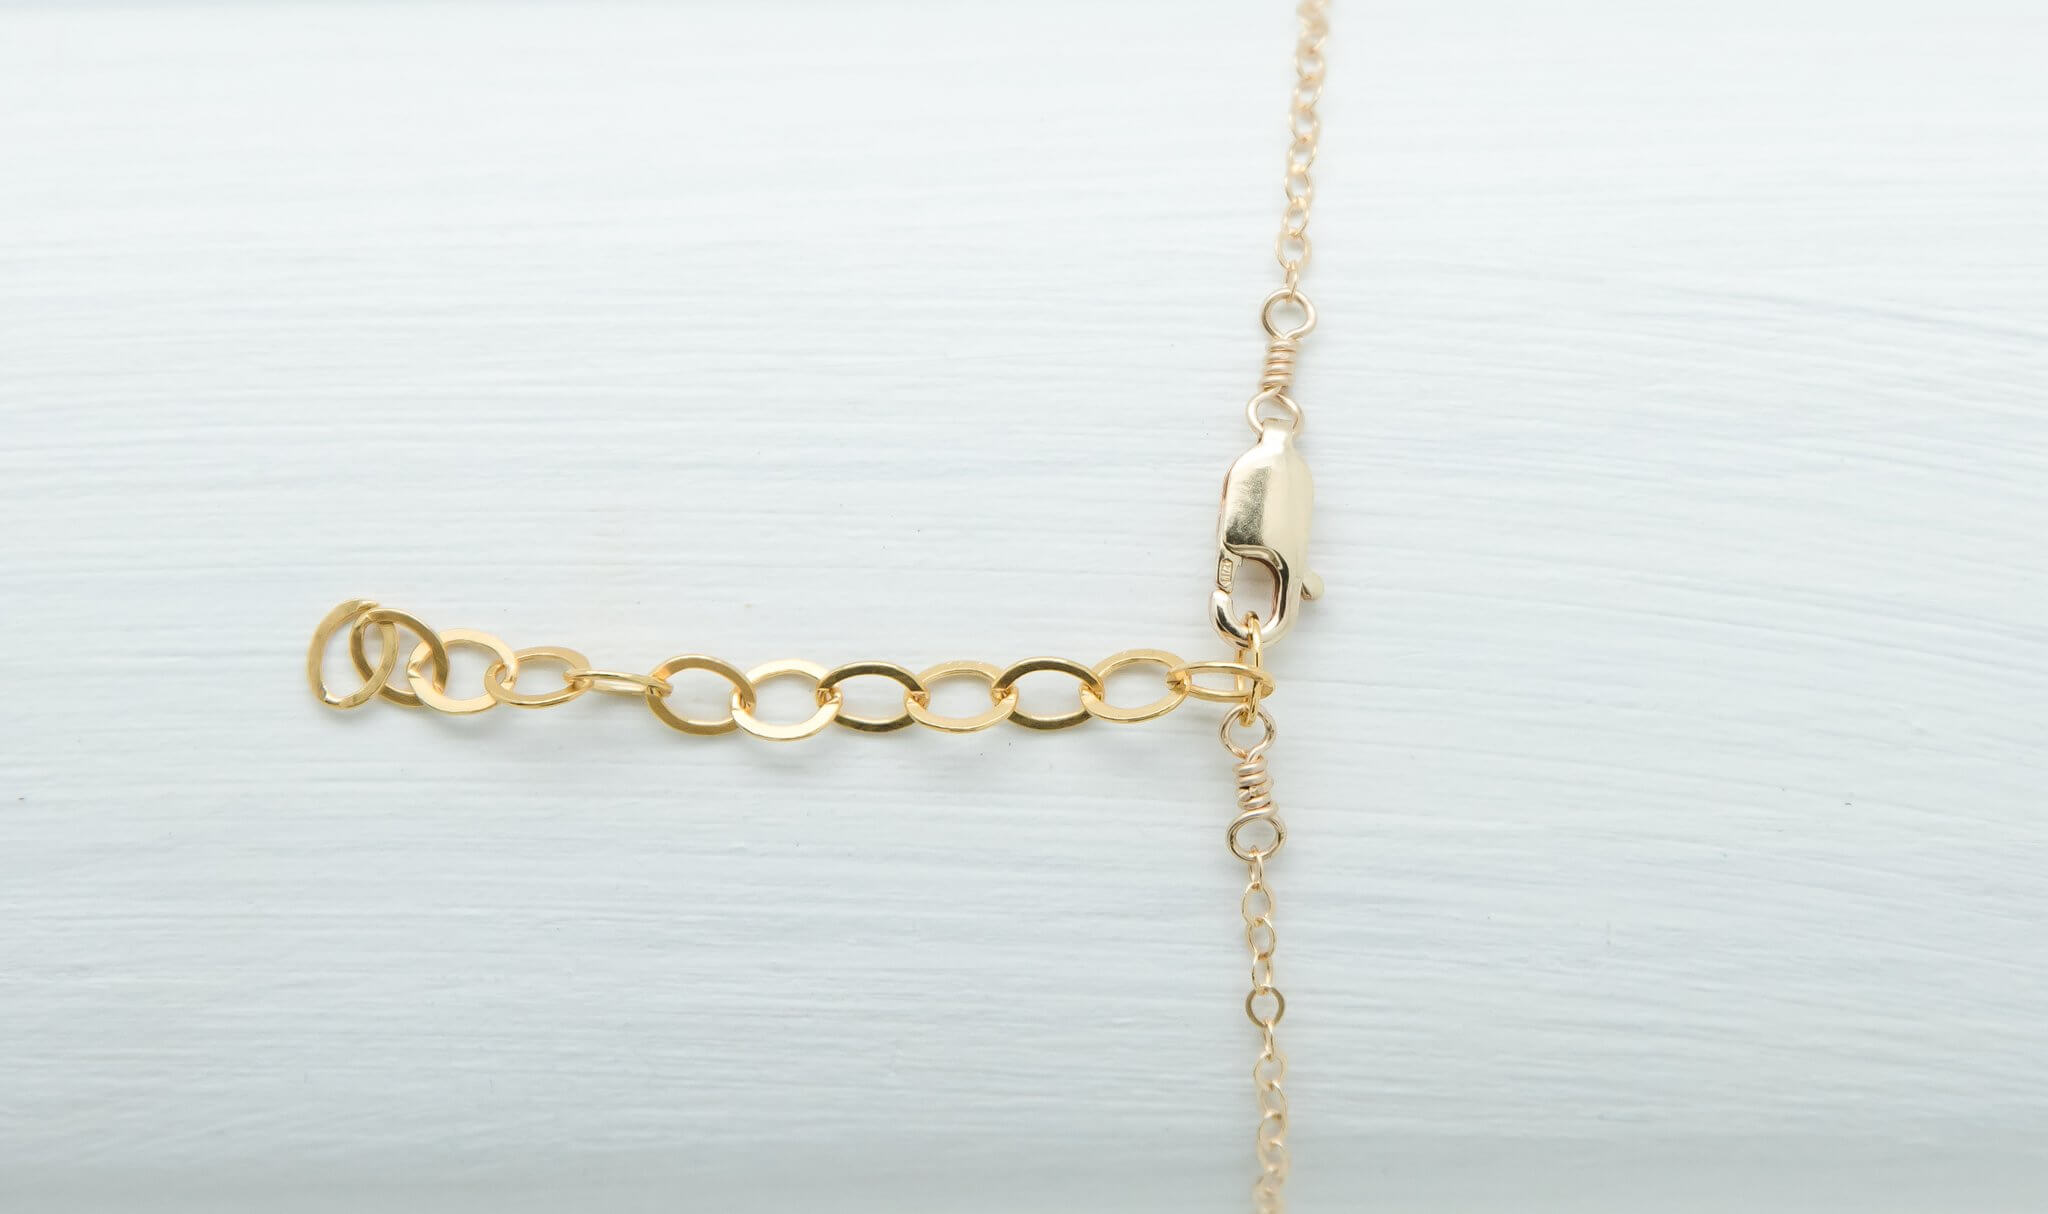 Anna Janelle - The Dainty Goddess Necklace - INGAR